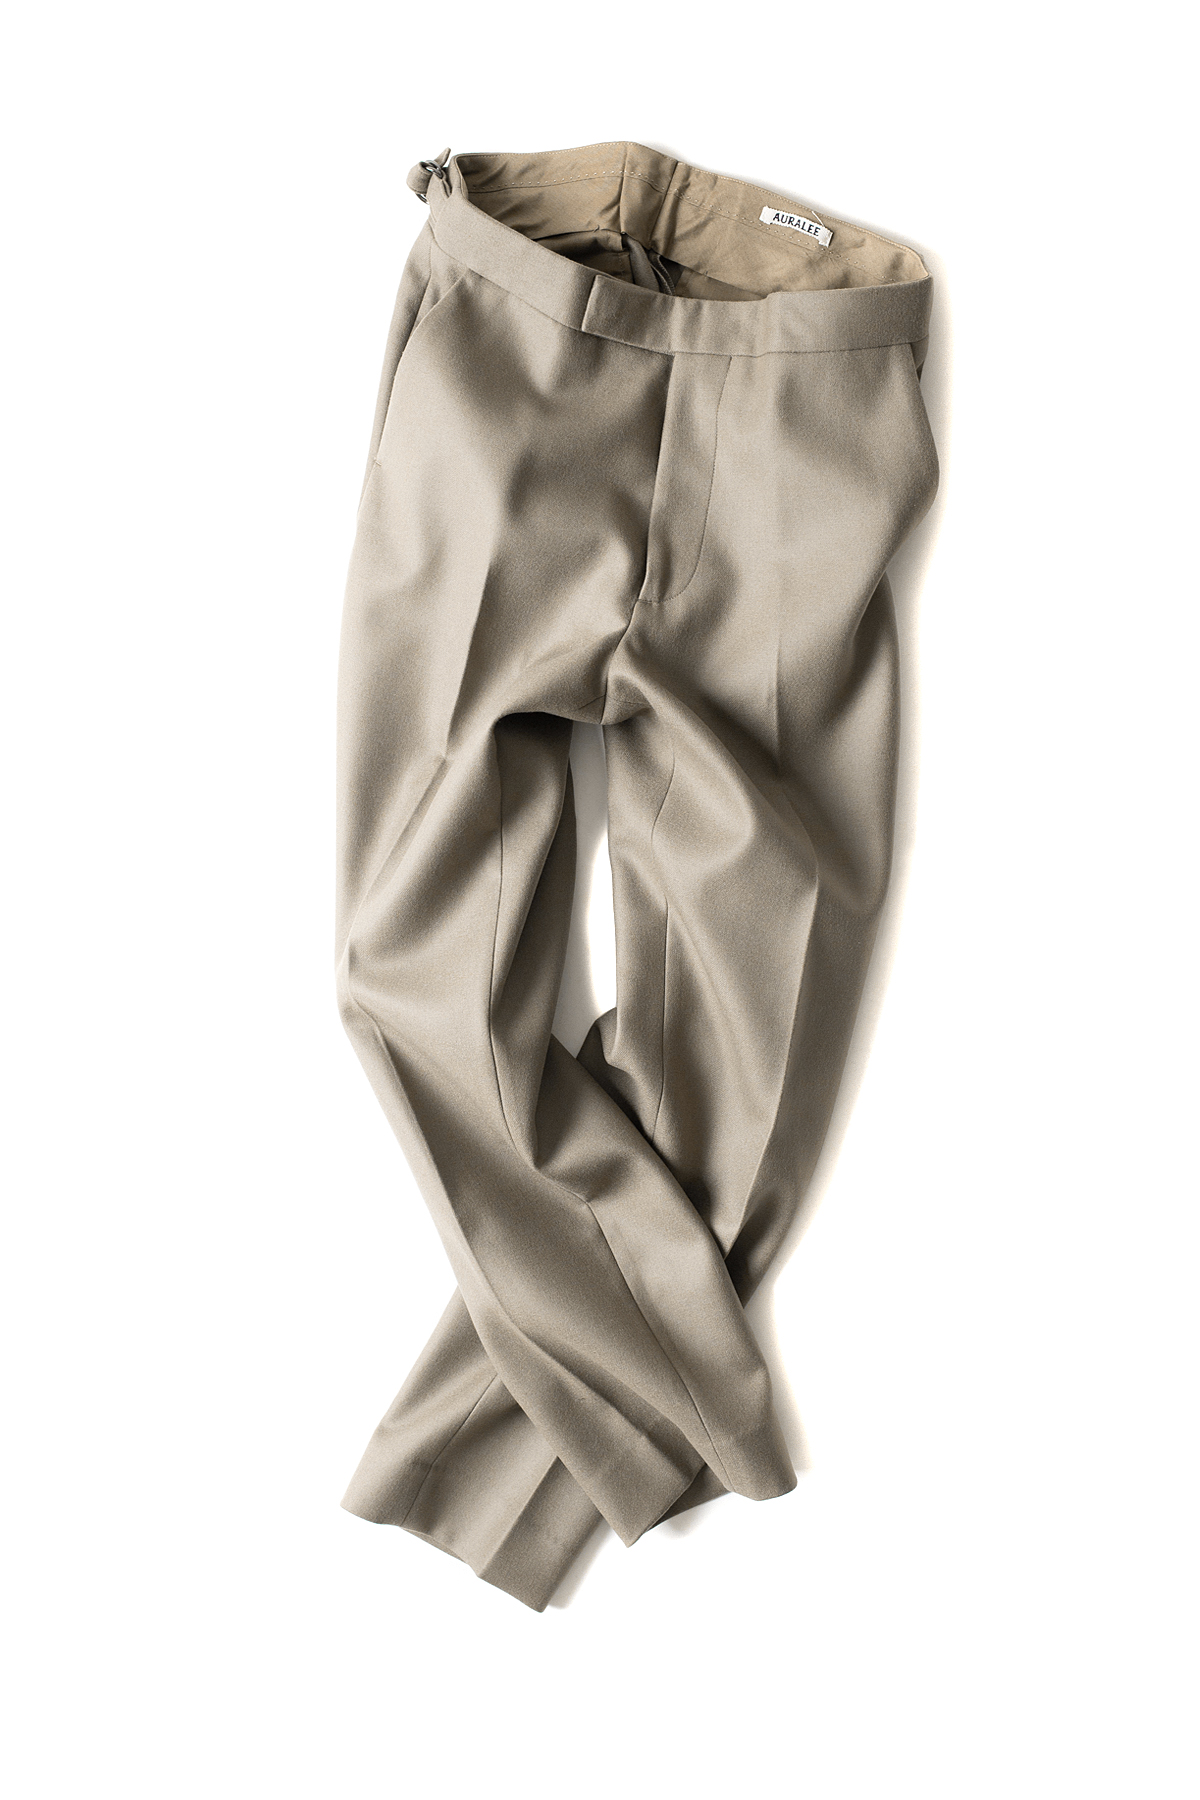 Auralee : Light Melton Slacks (Grey Beige)